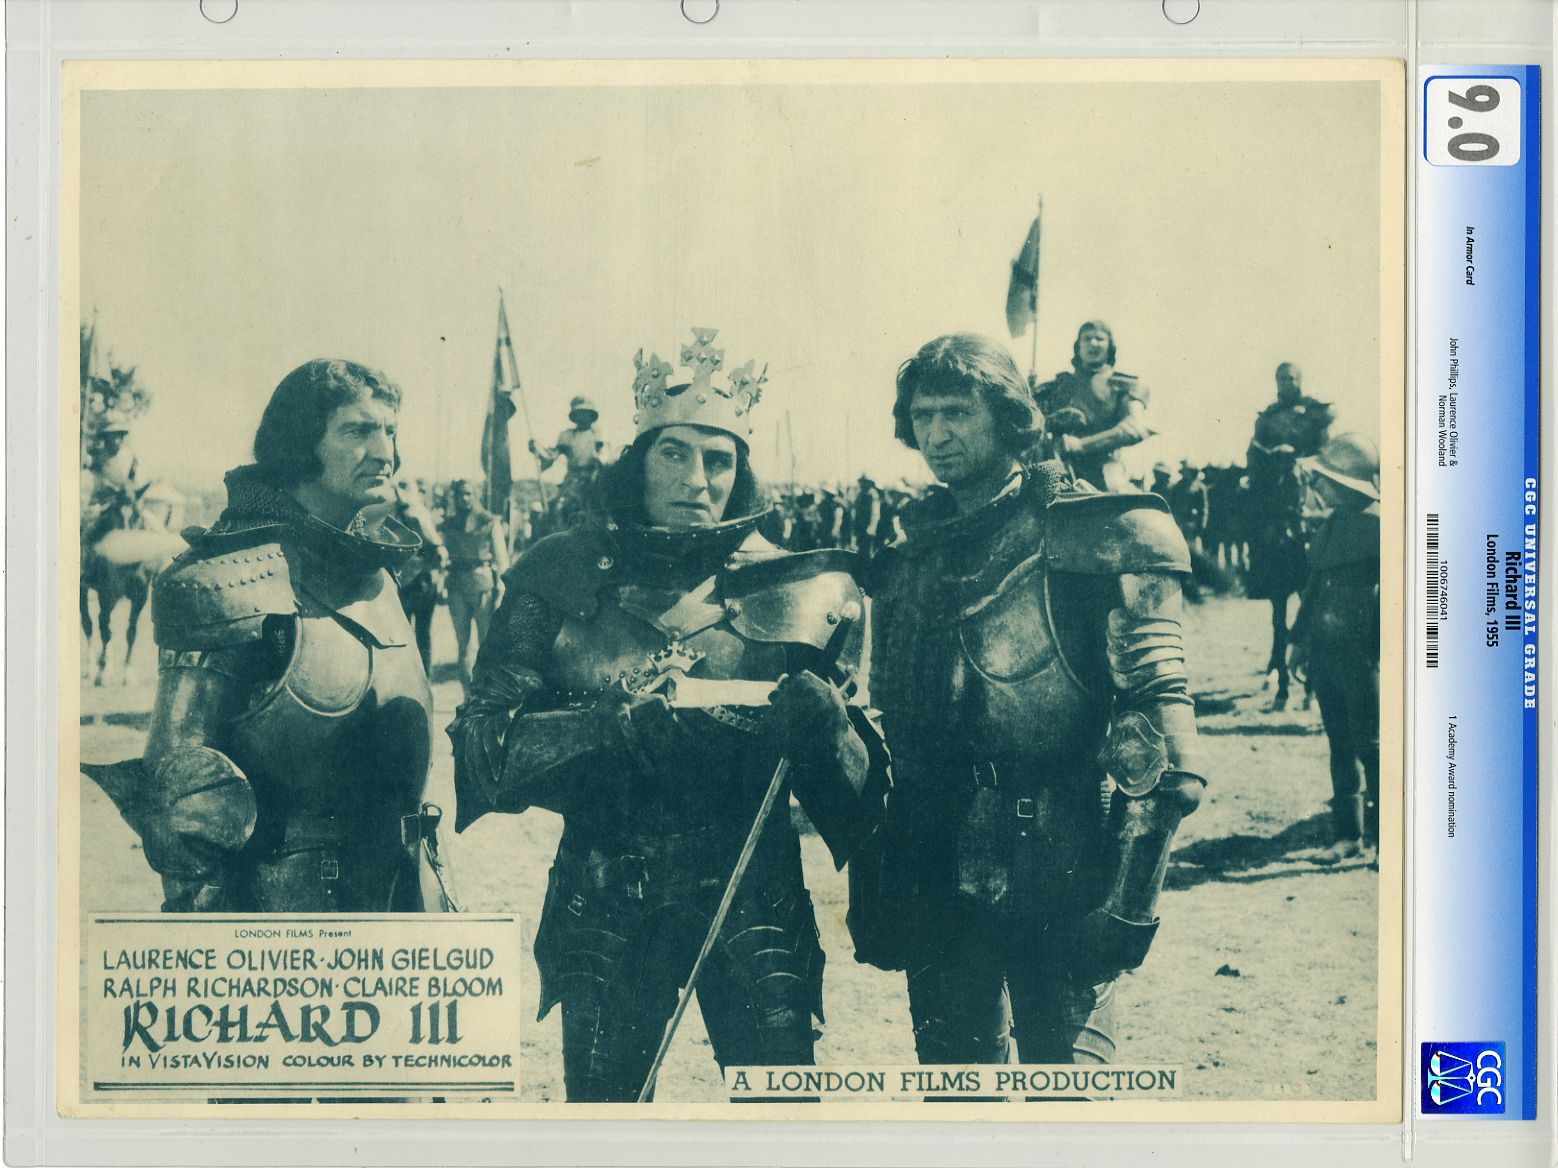 Lobby card of Laurence Olivier in armor and crown in Richard III movieloversreviews.blogspot.com